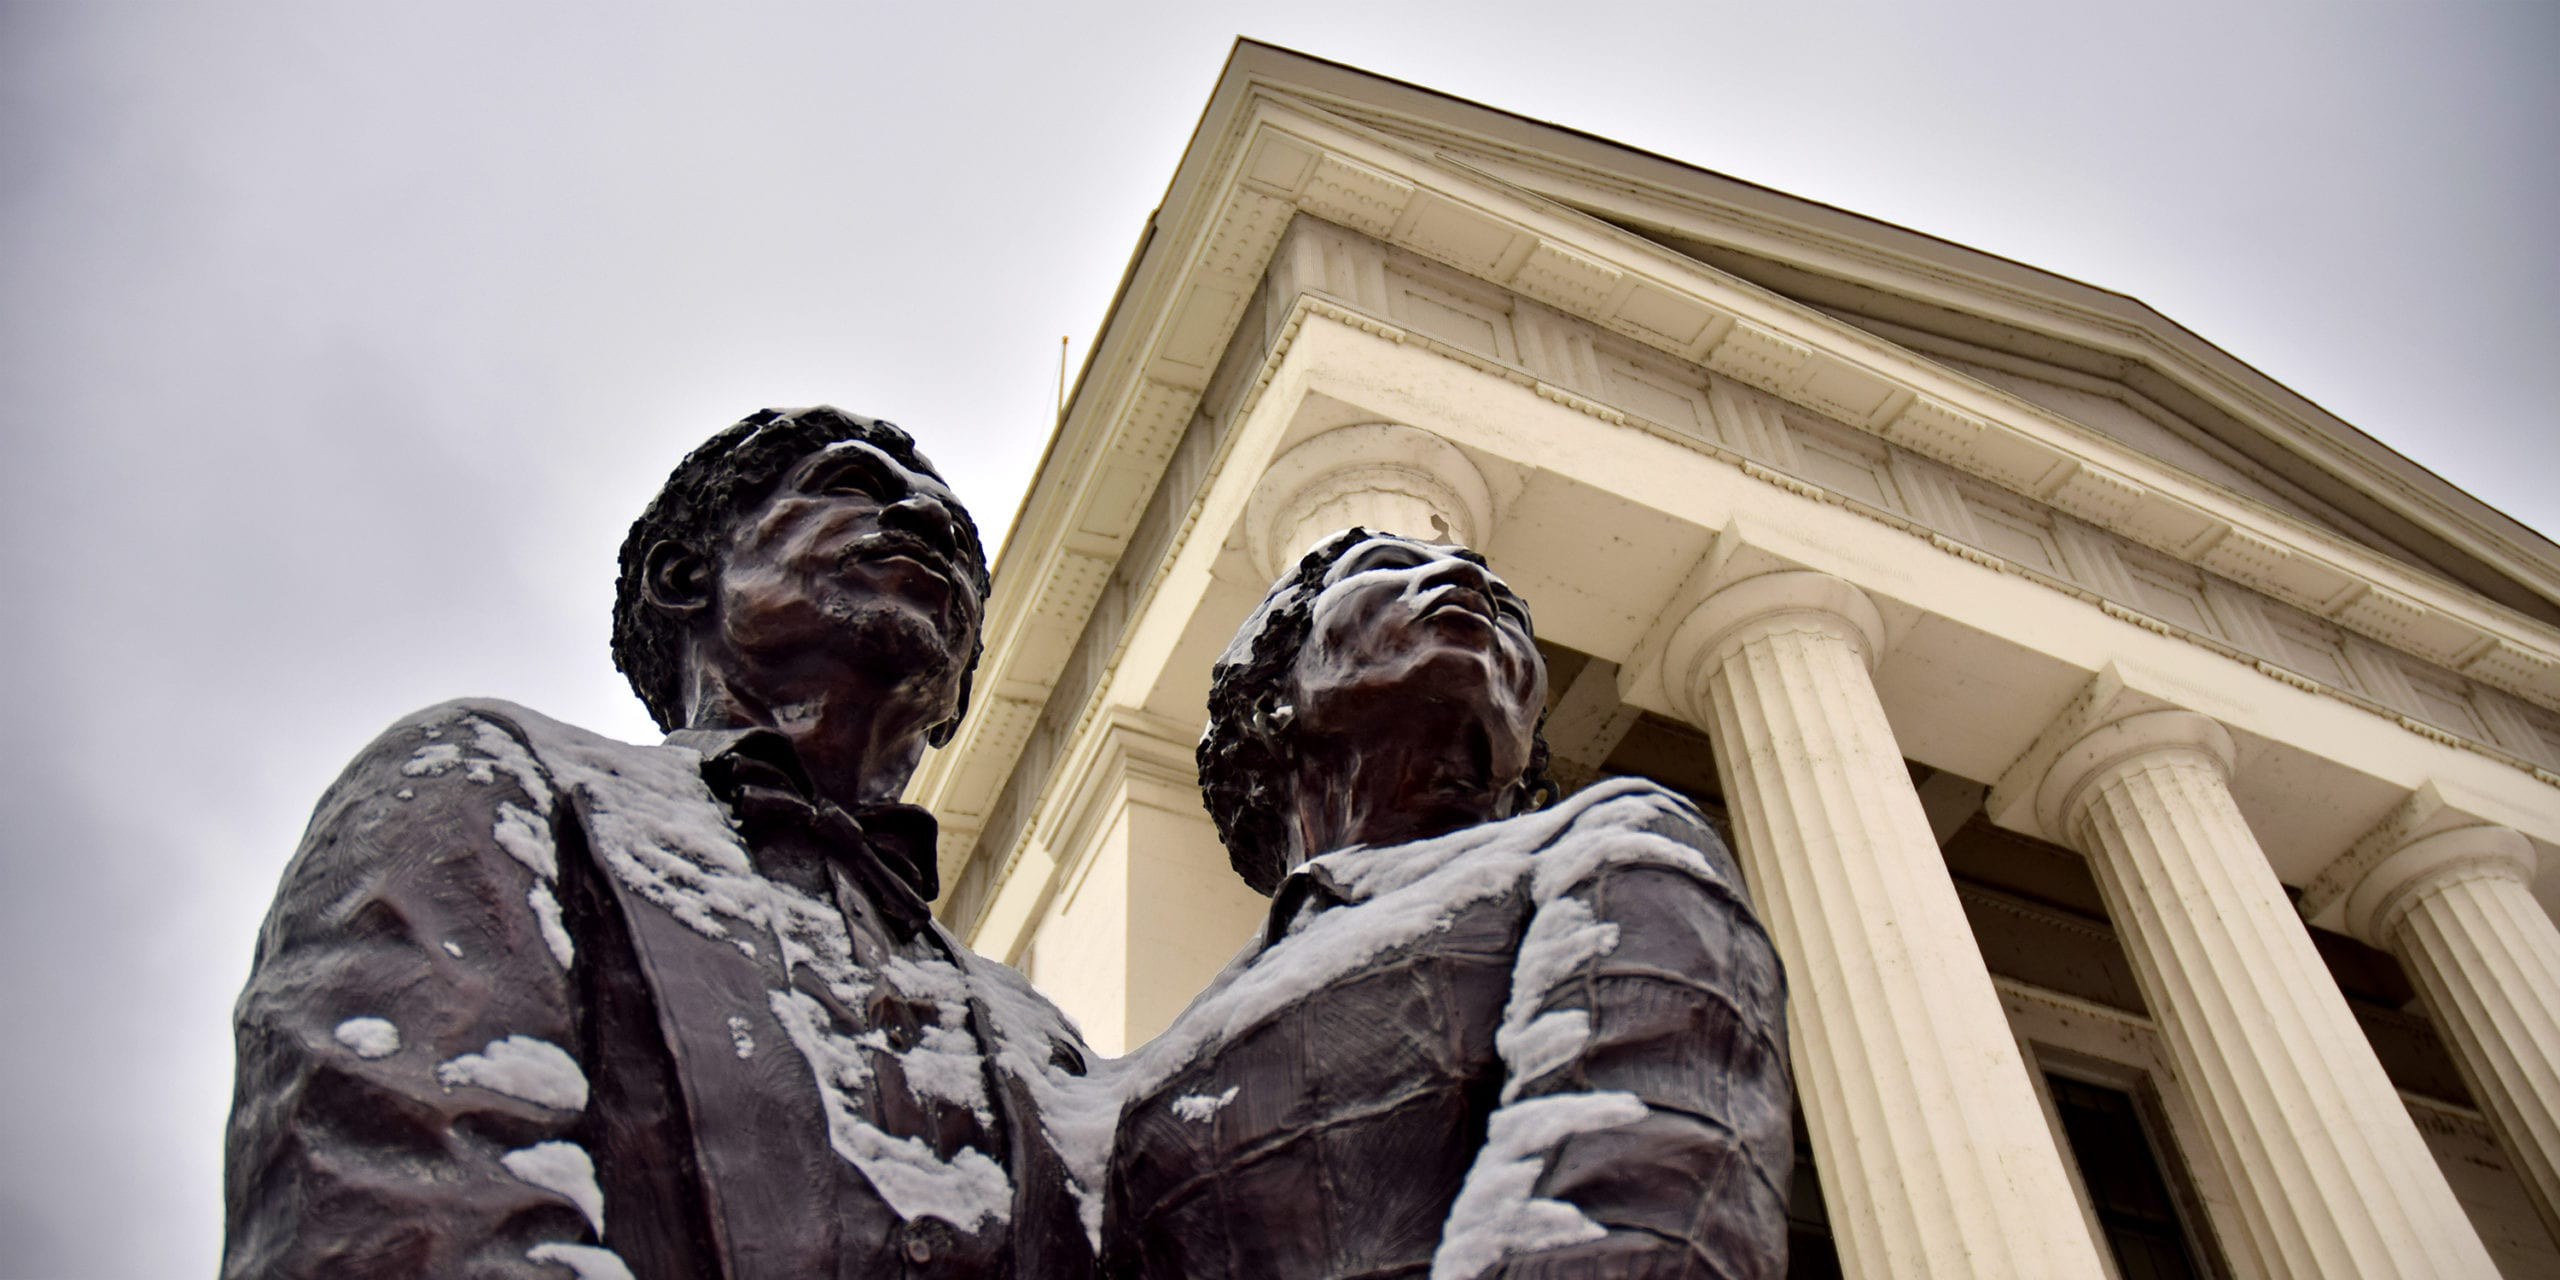 A bronze statue of Dred and Harriet Scott at the Old Courthouse in St. Louis.